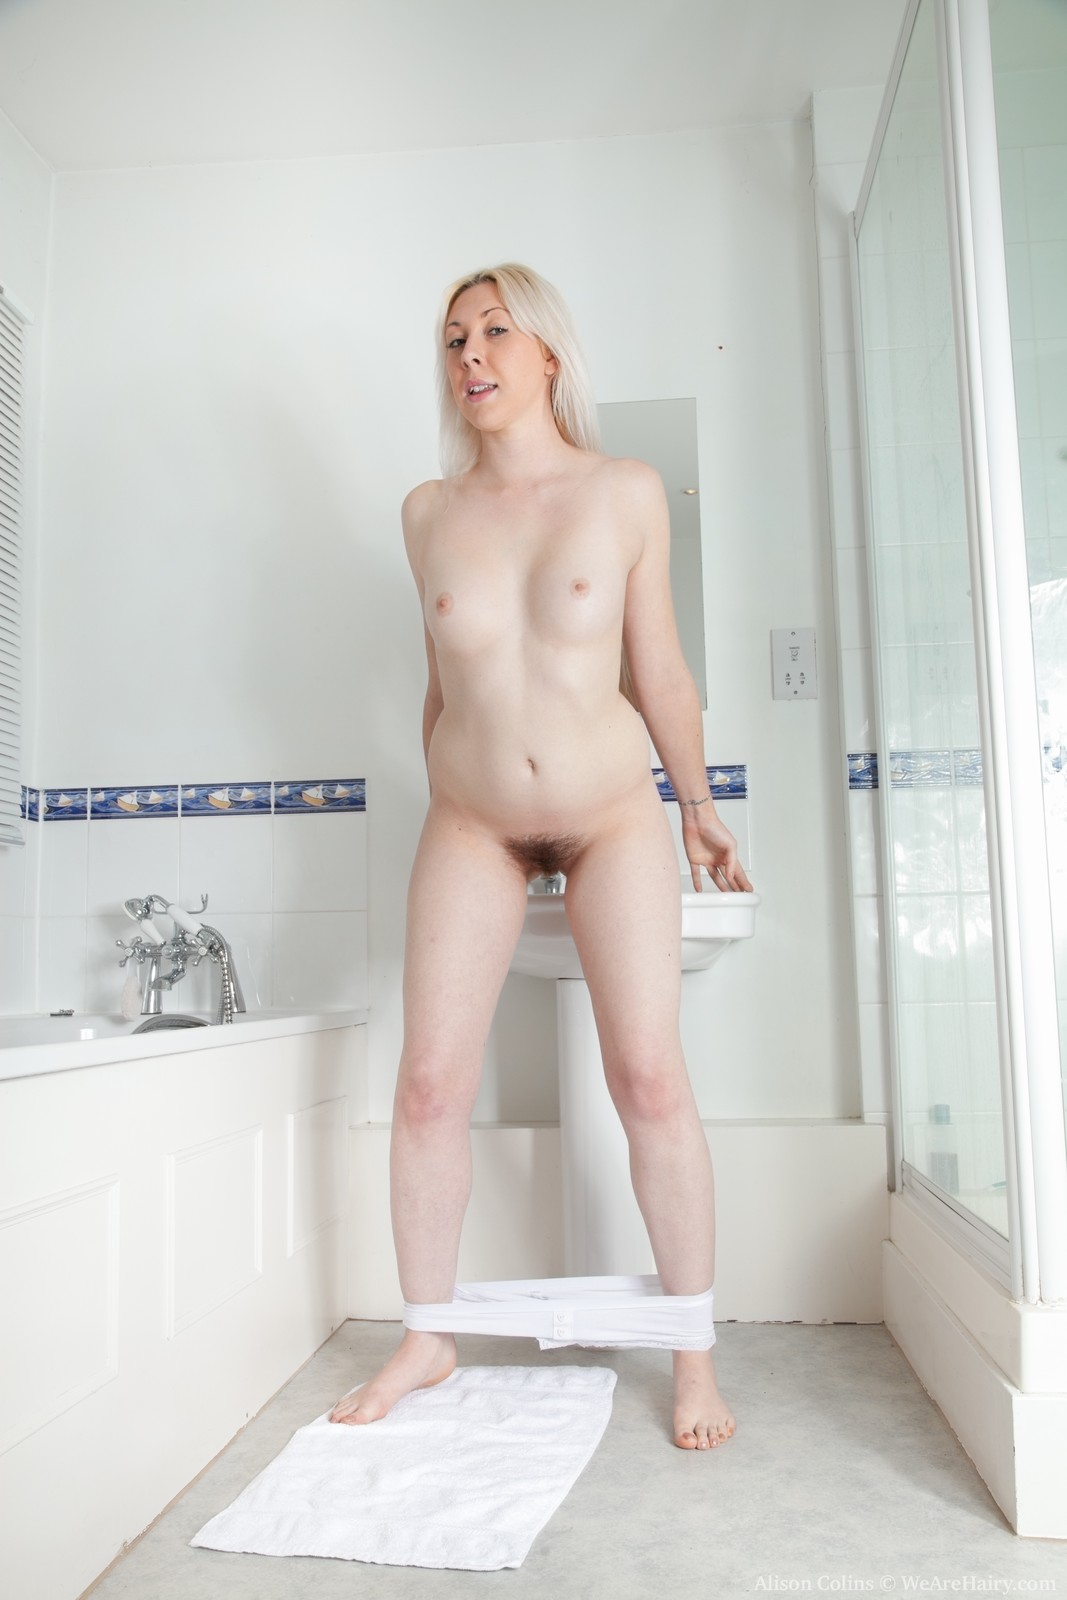 Hairy girl shower nude